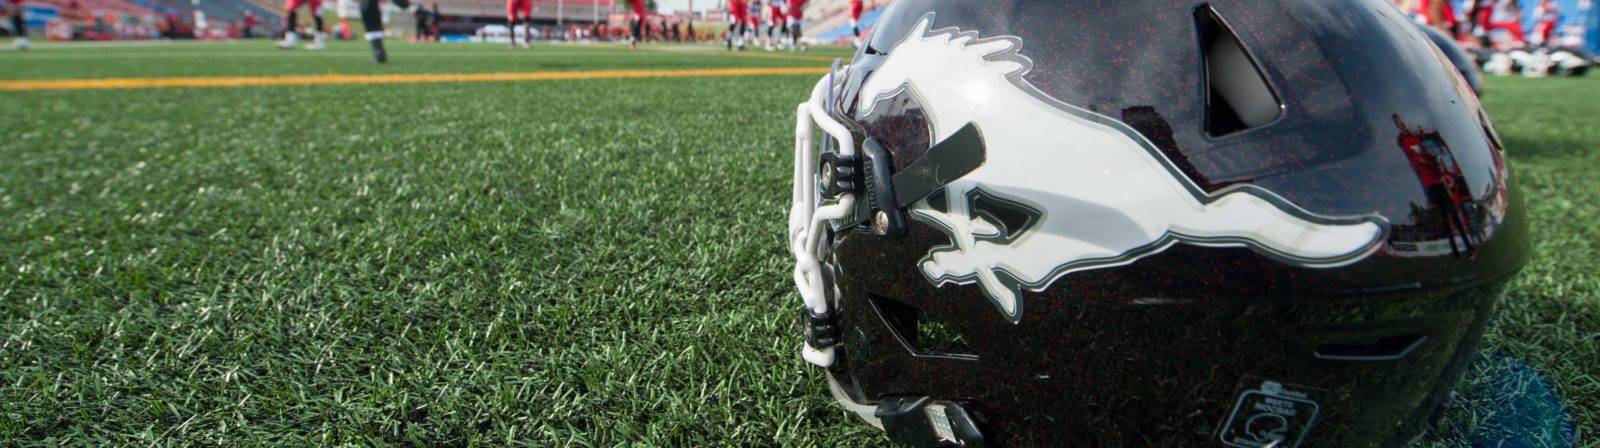 Atb Mobile App >> Stampeders make roster moves - Calgary Stampeders